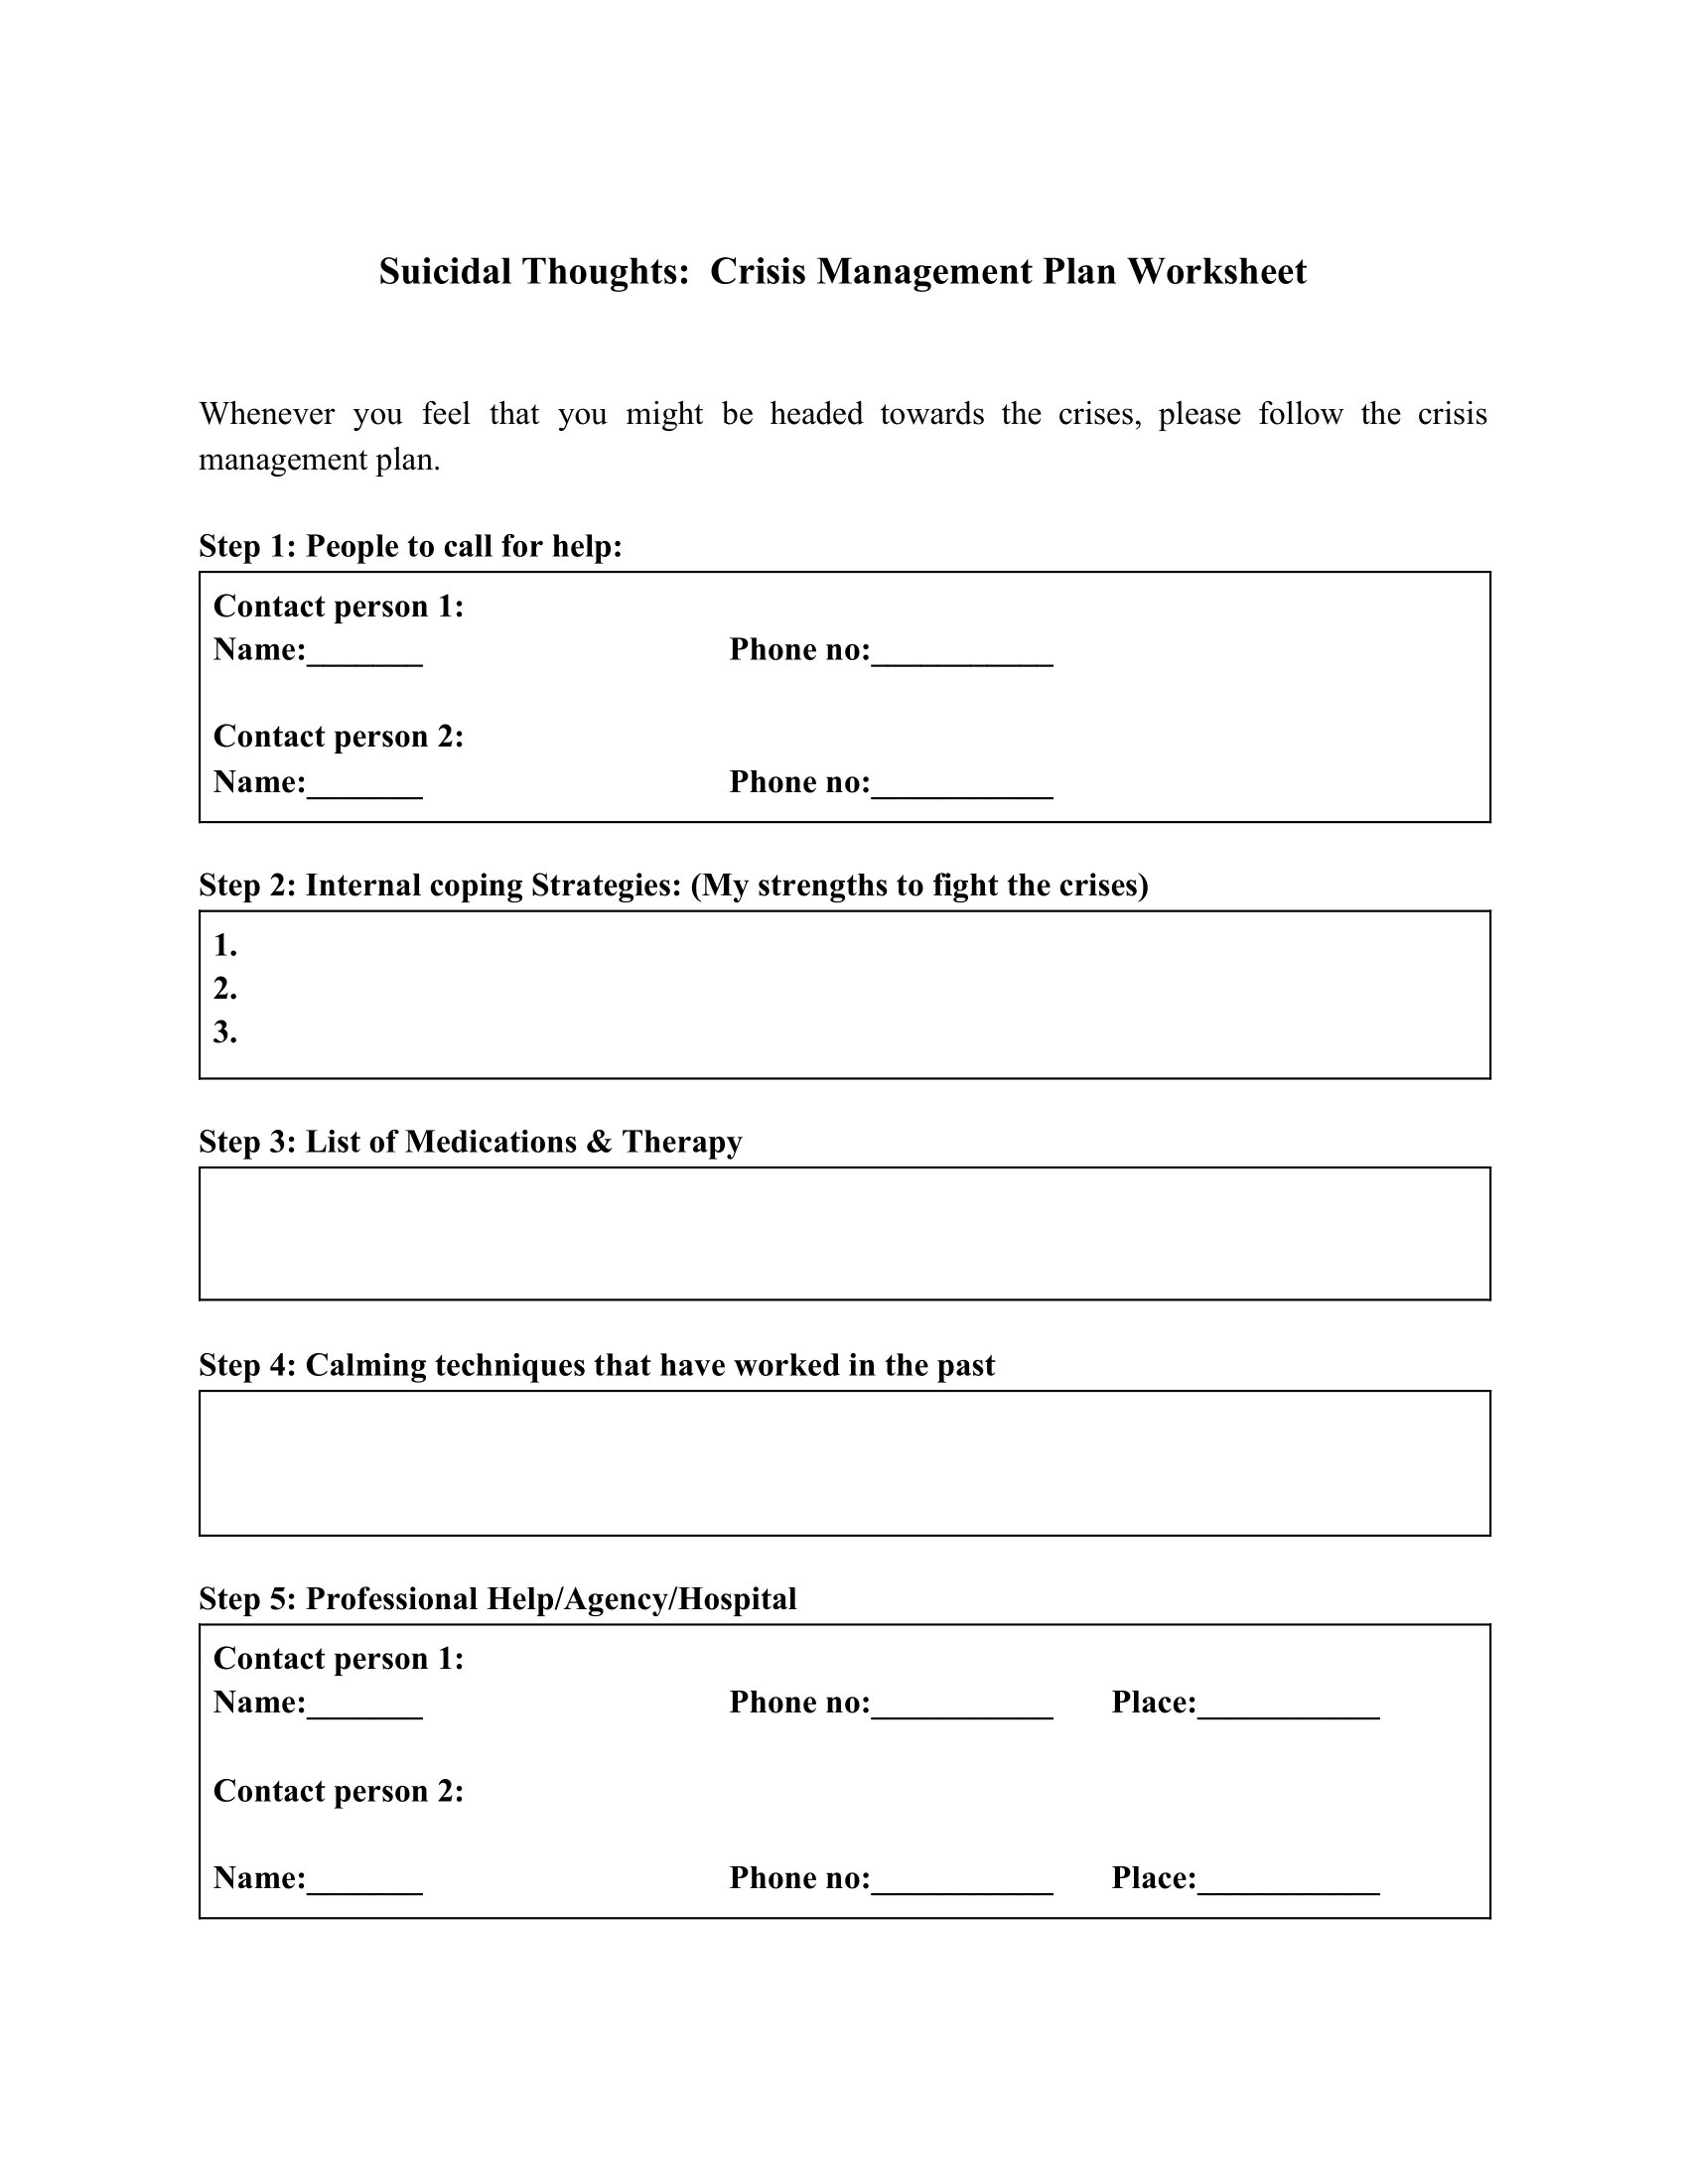 Suicidal Thoughts Crisis Management Plan Worksheet